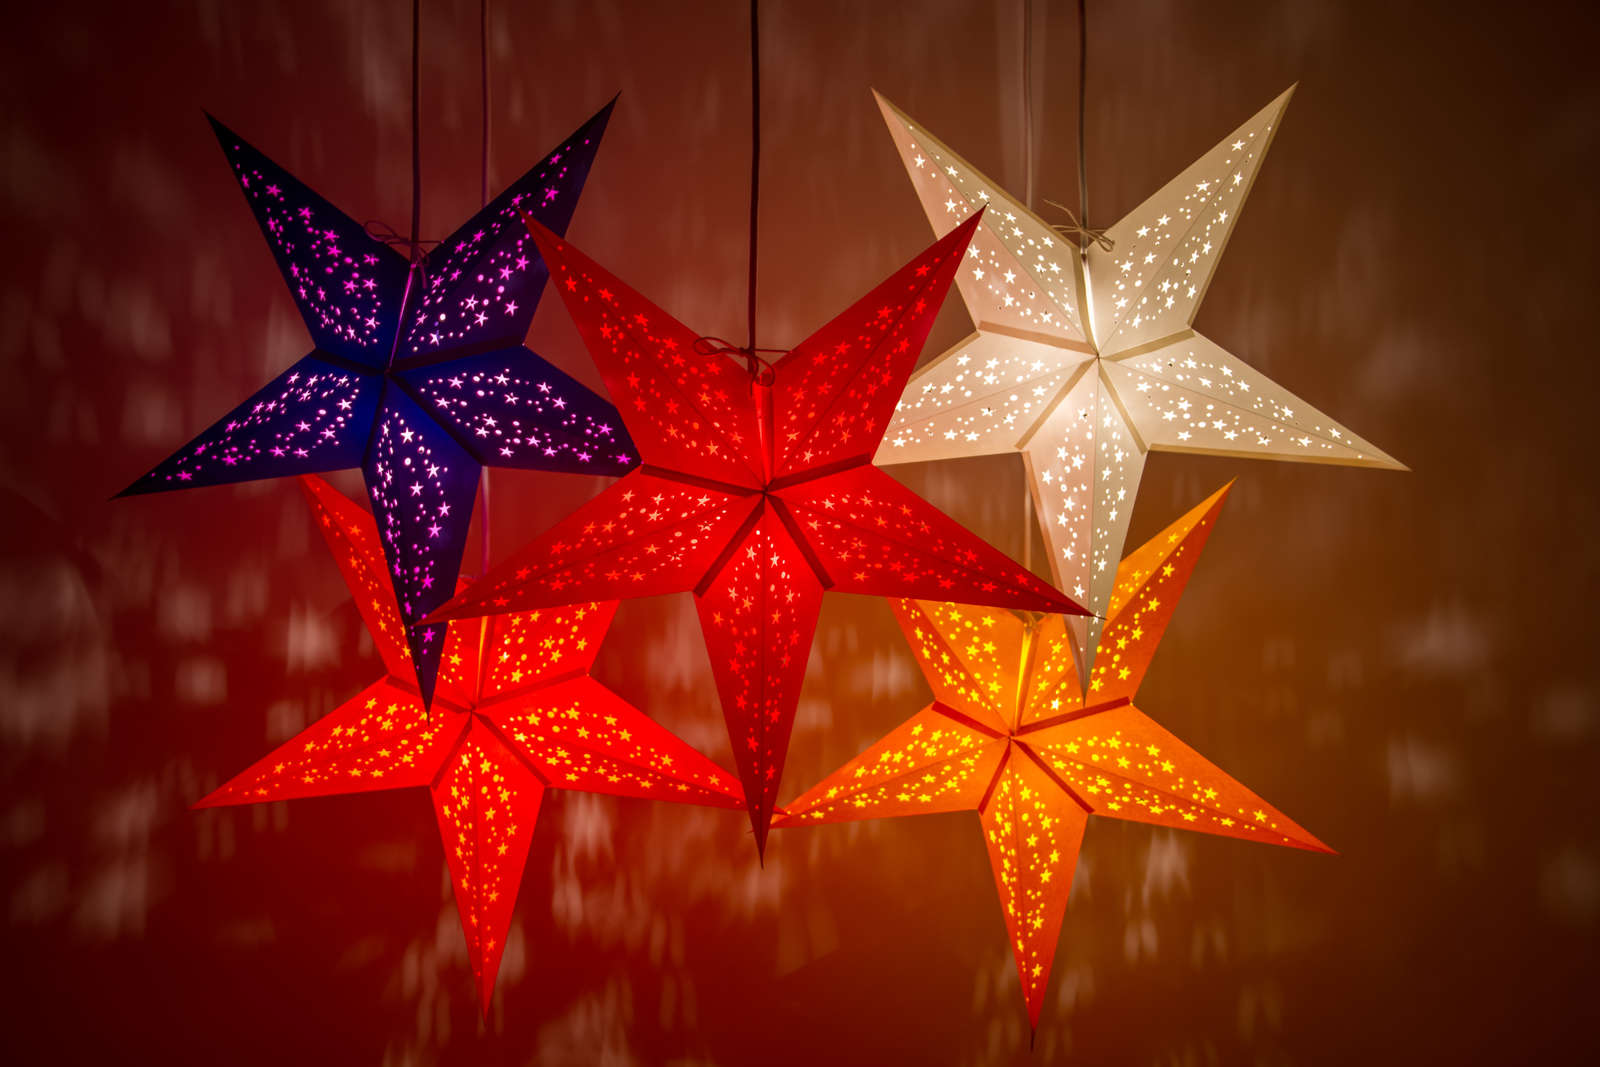 Starry Decorative Paper Star Lanterns & Light Shades